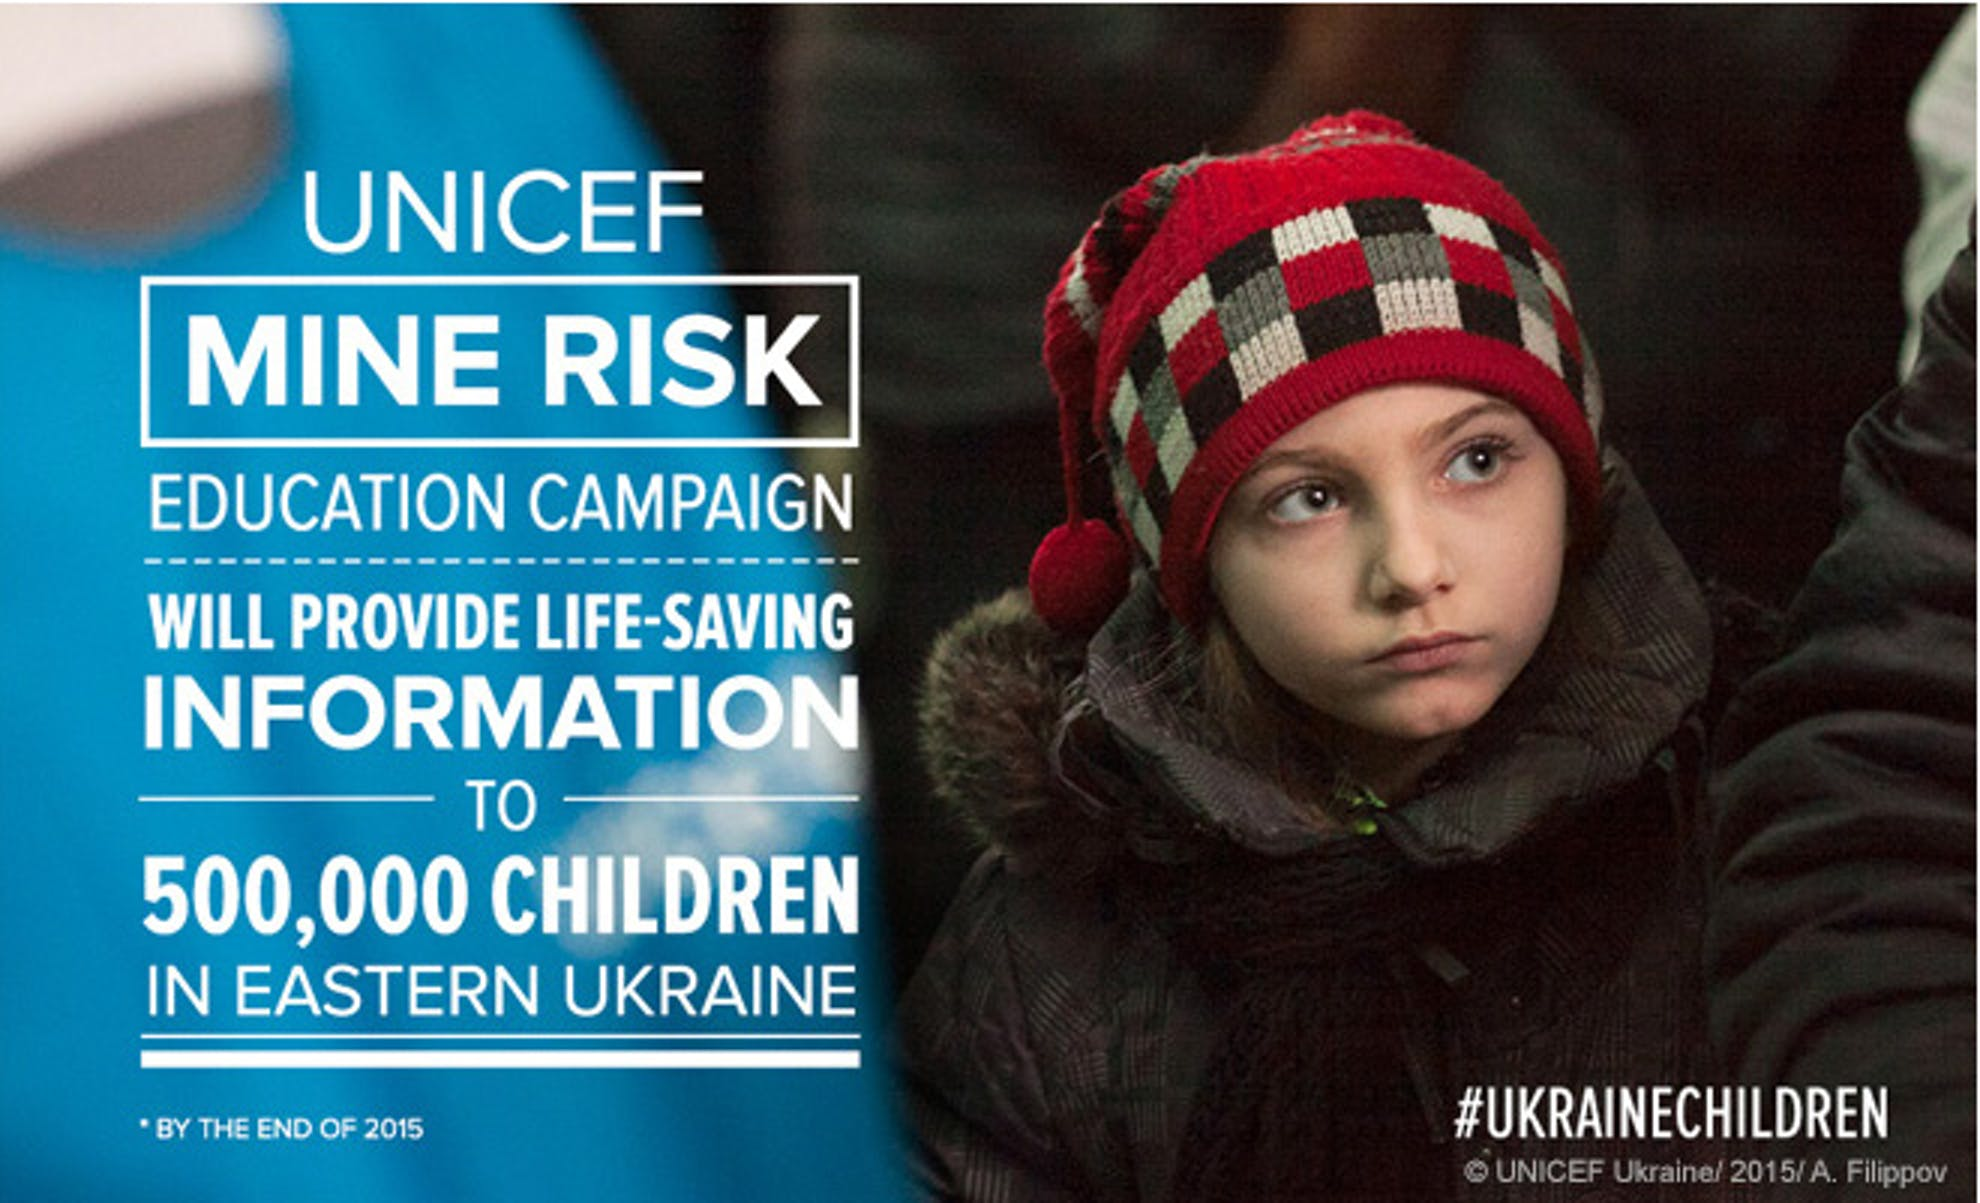 ©UNICEF Ucraina/2015/A.Filippov